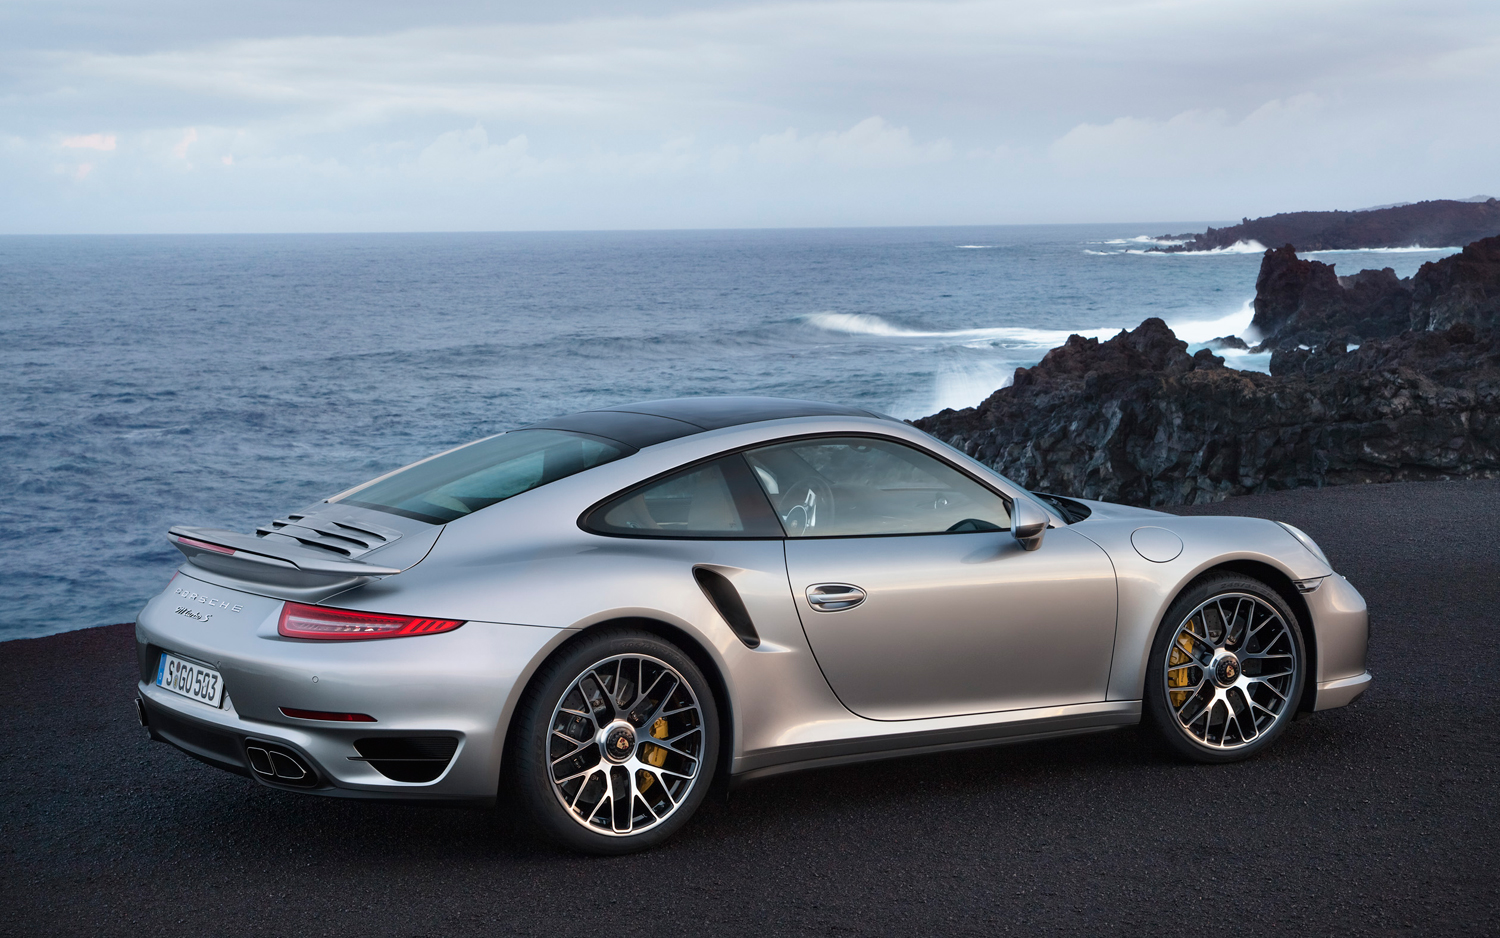 2014-Porsche-911-Turbo-S-rear-three-quarters